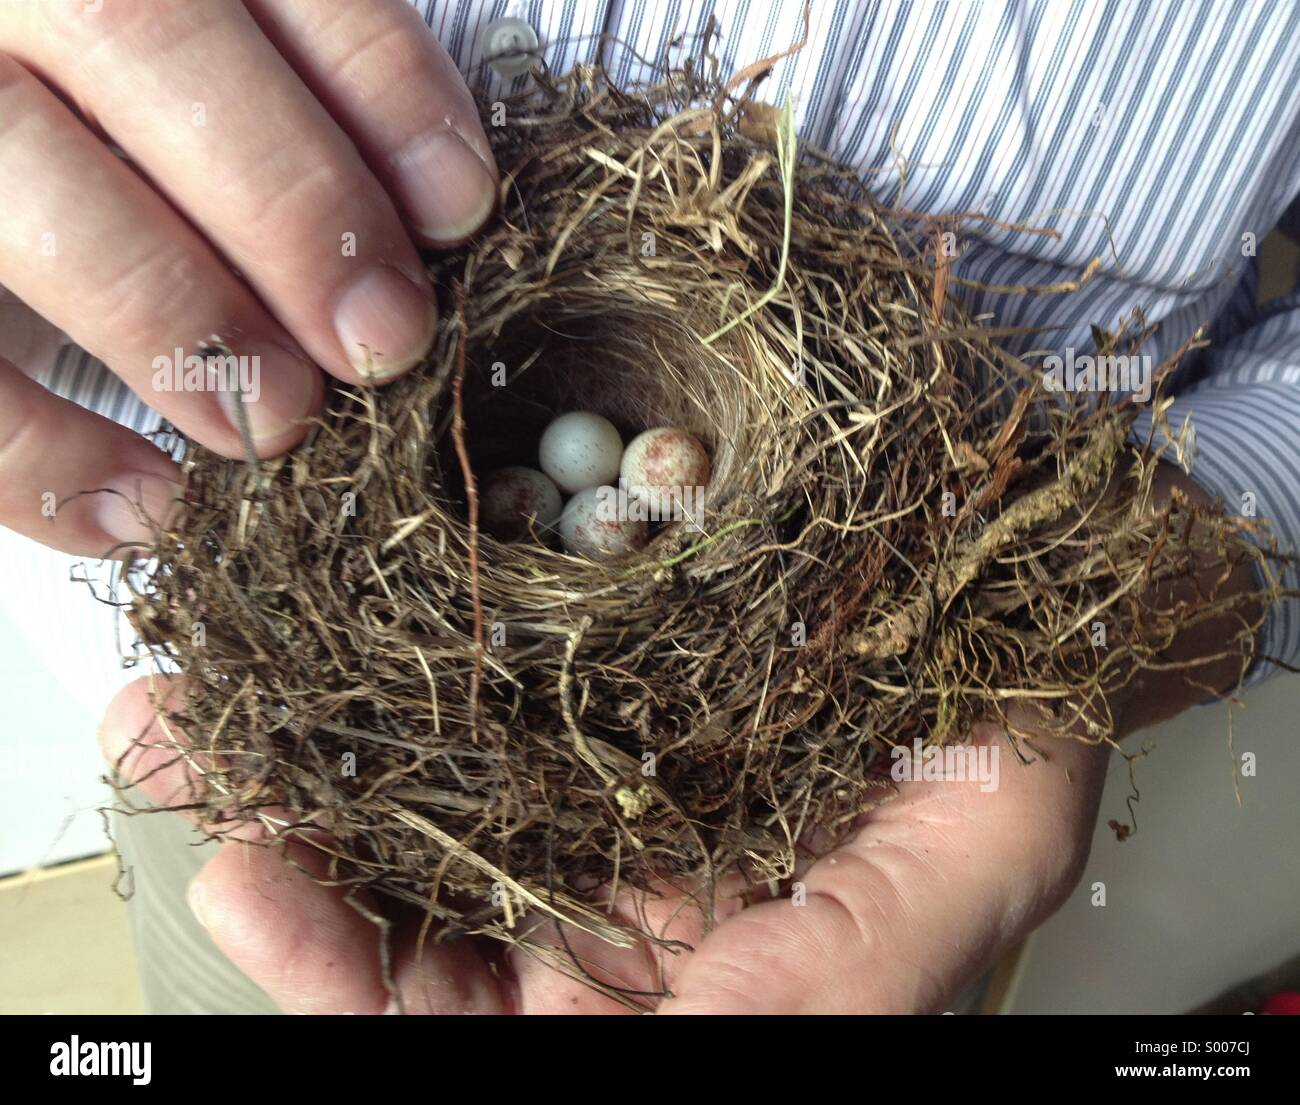 Holding bird nest - Stock Image